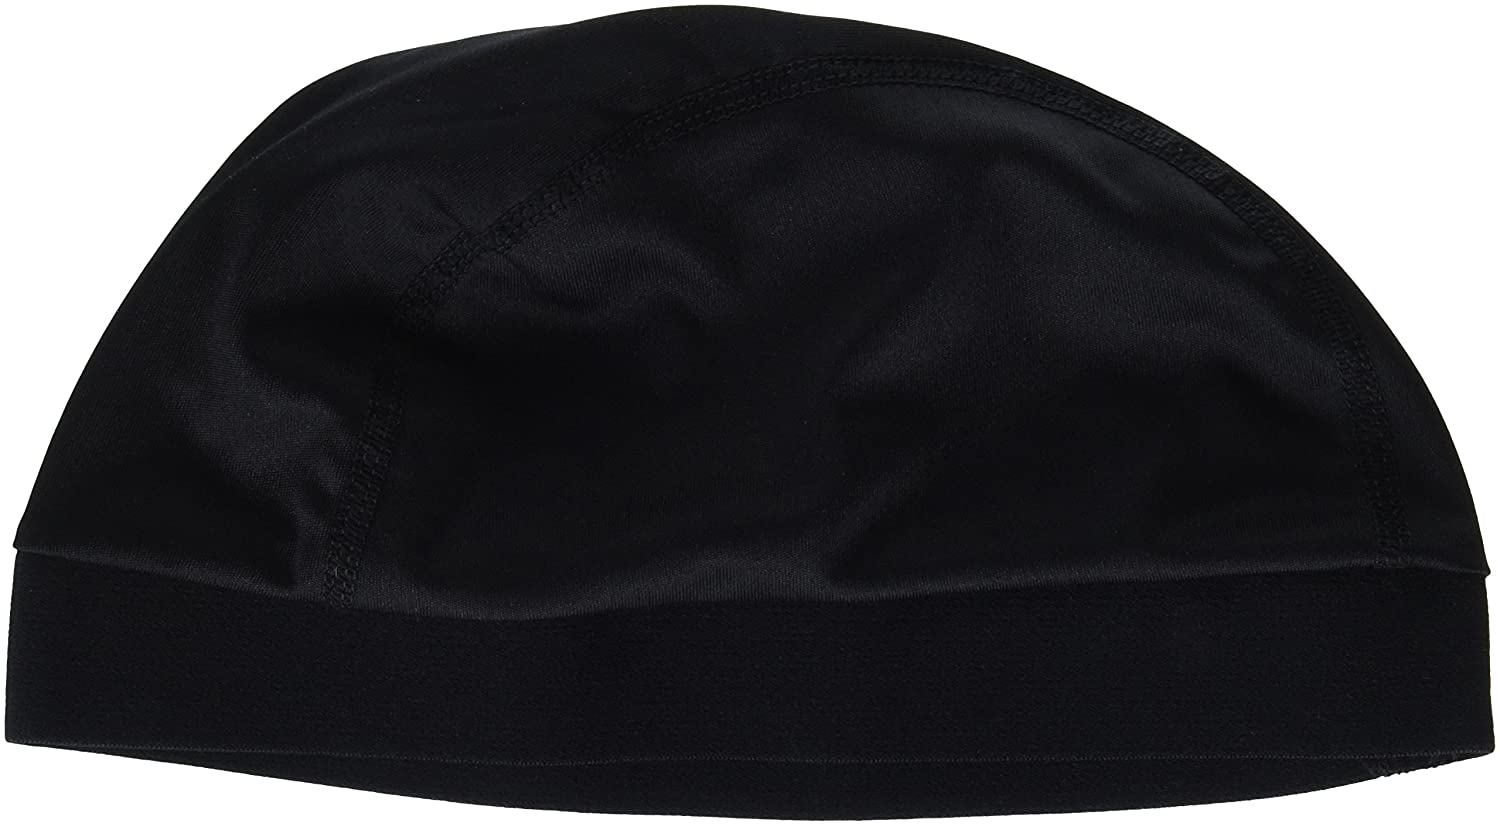 ZANheadgear Micro Fleece and Neoprene Helmet Liner (Black) Zan Headgear WHLF114N